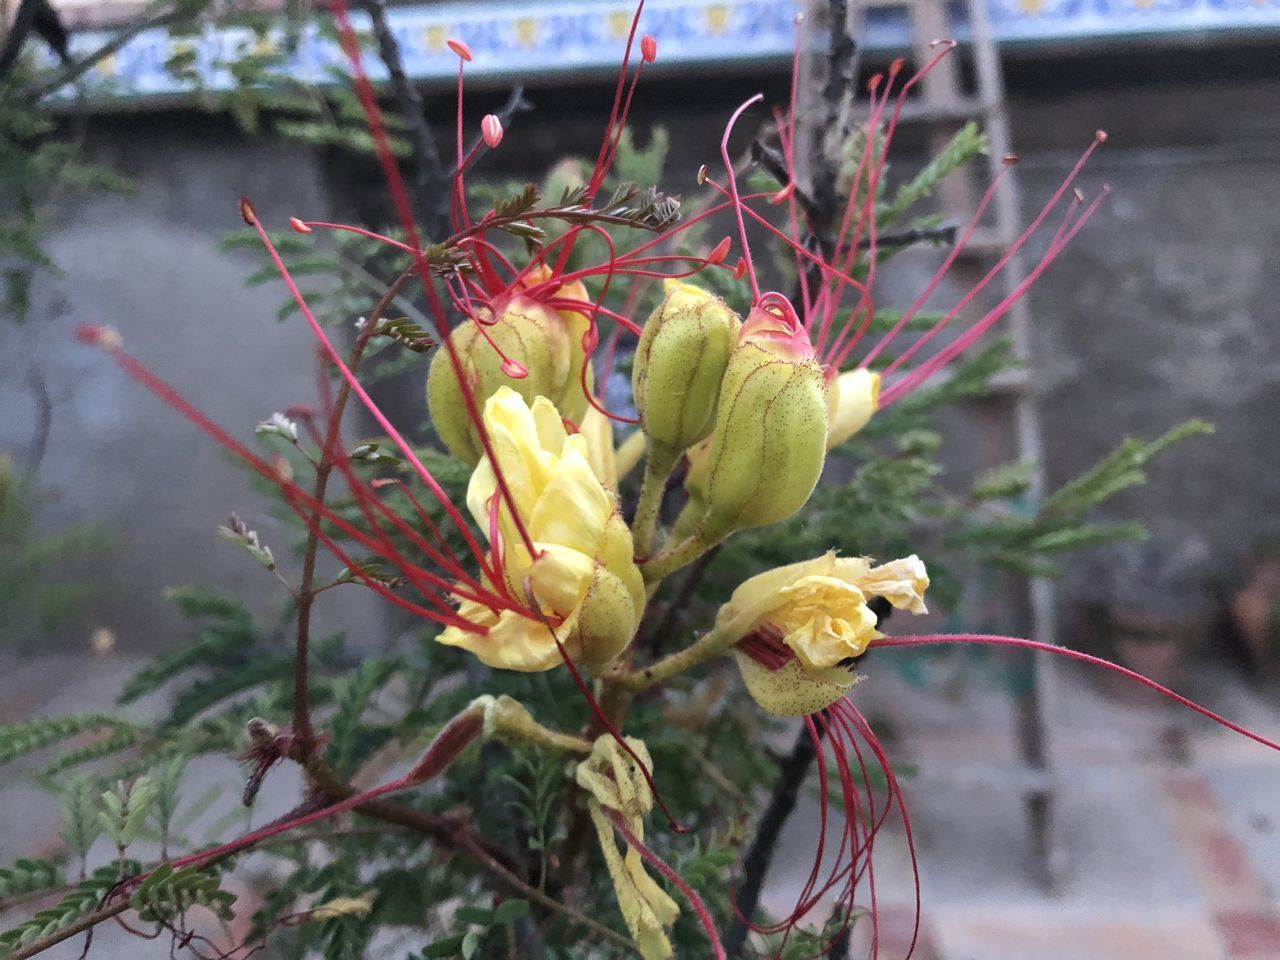 plant, flowering plant, flower, growth, beauty in nature, freshness, focus on foreground, close-up, nature, vulnerability, fragility, yellow, no people, day, inflorescence, bud, petal, flower head, outdoors, plant stem, pollen, wilted plant, sepal, bouquet